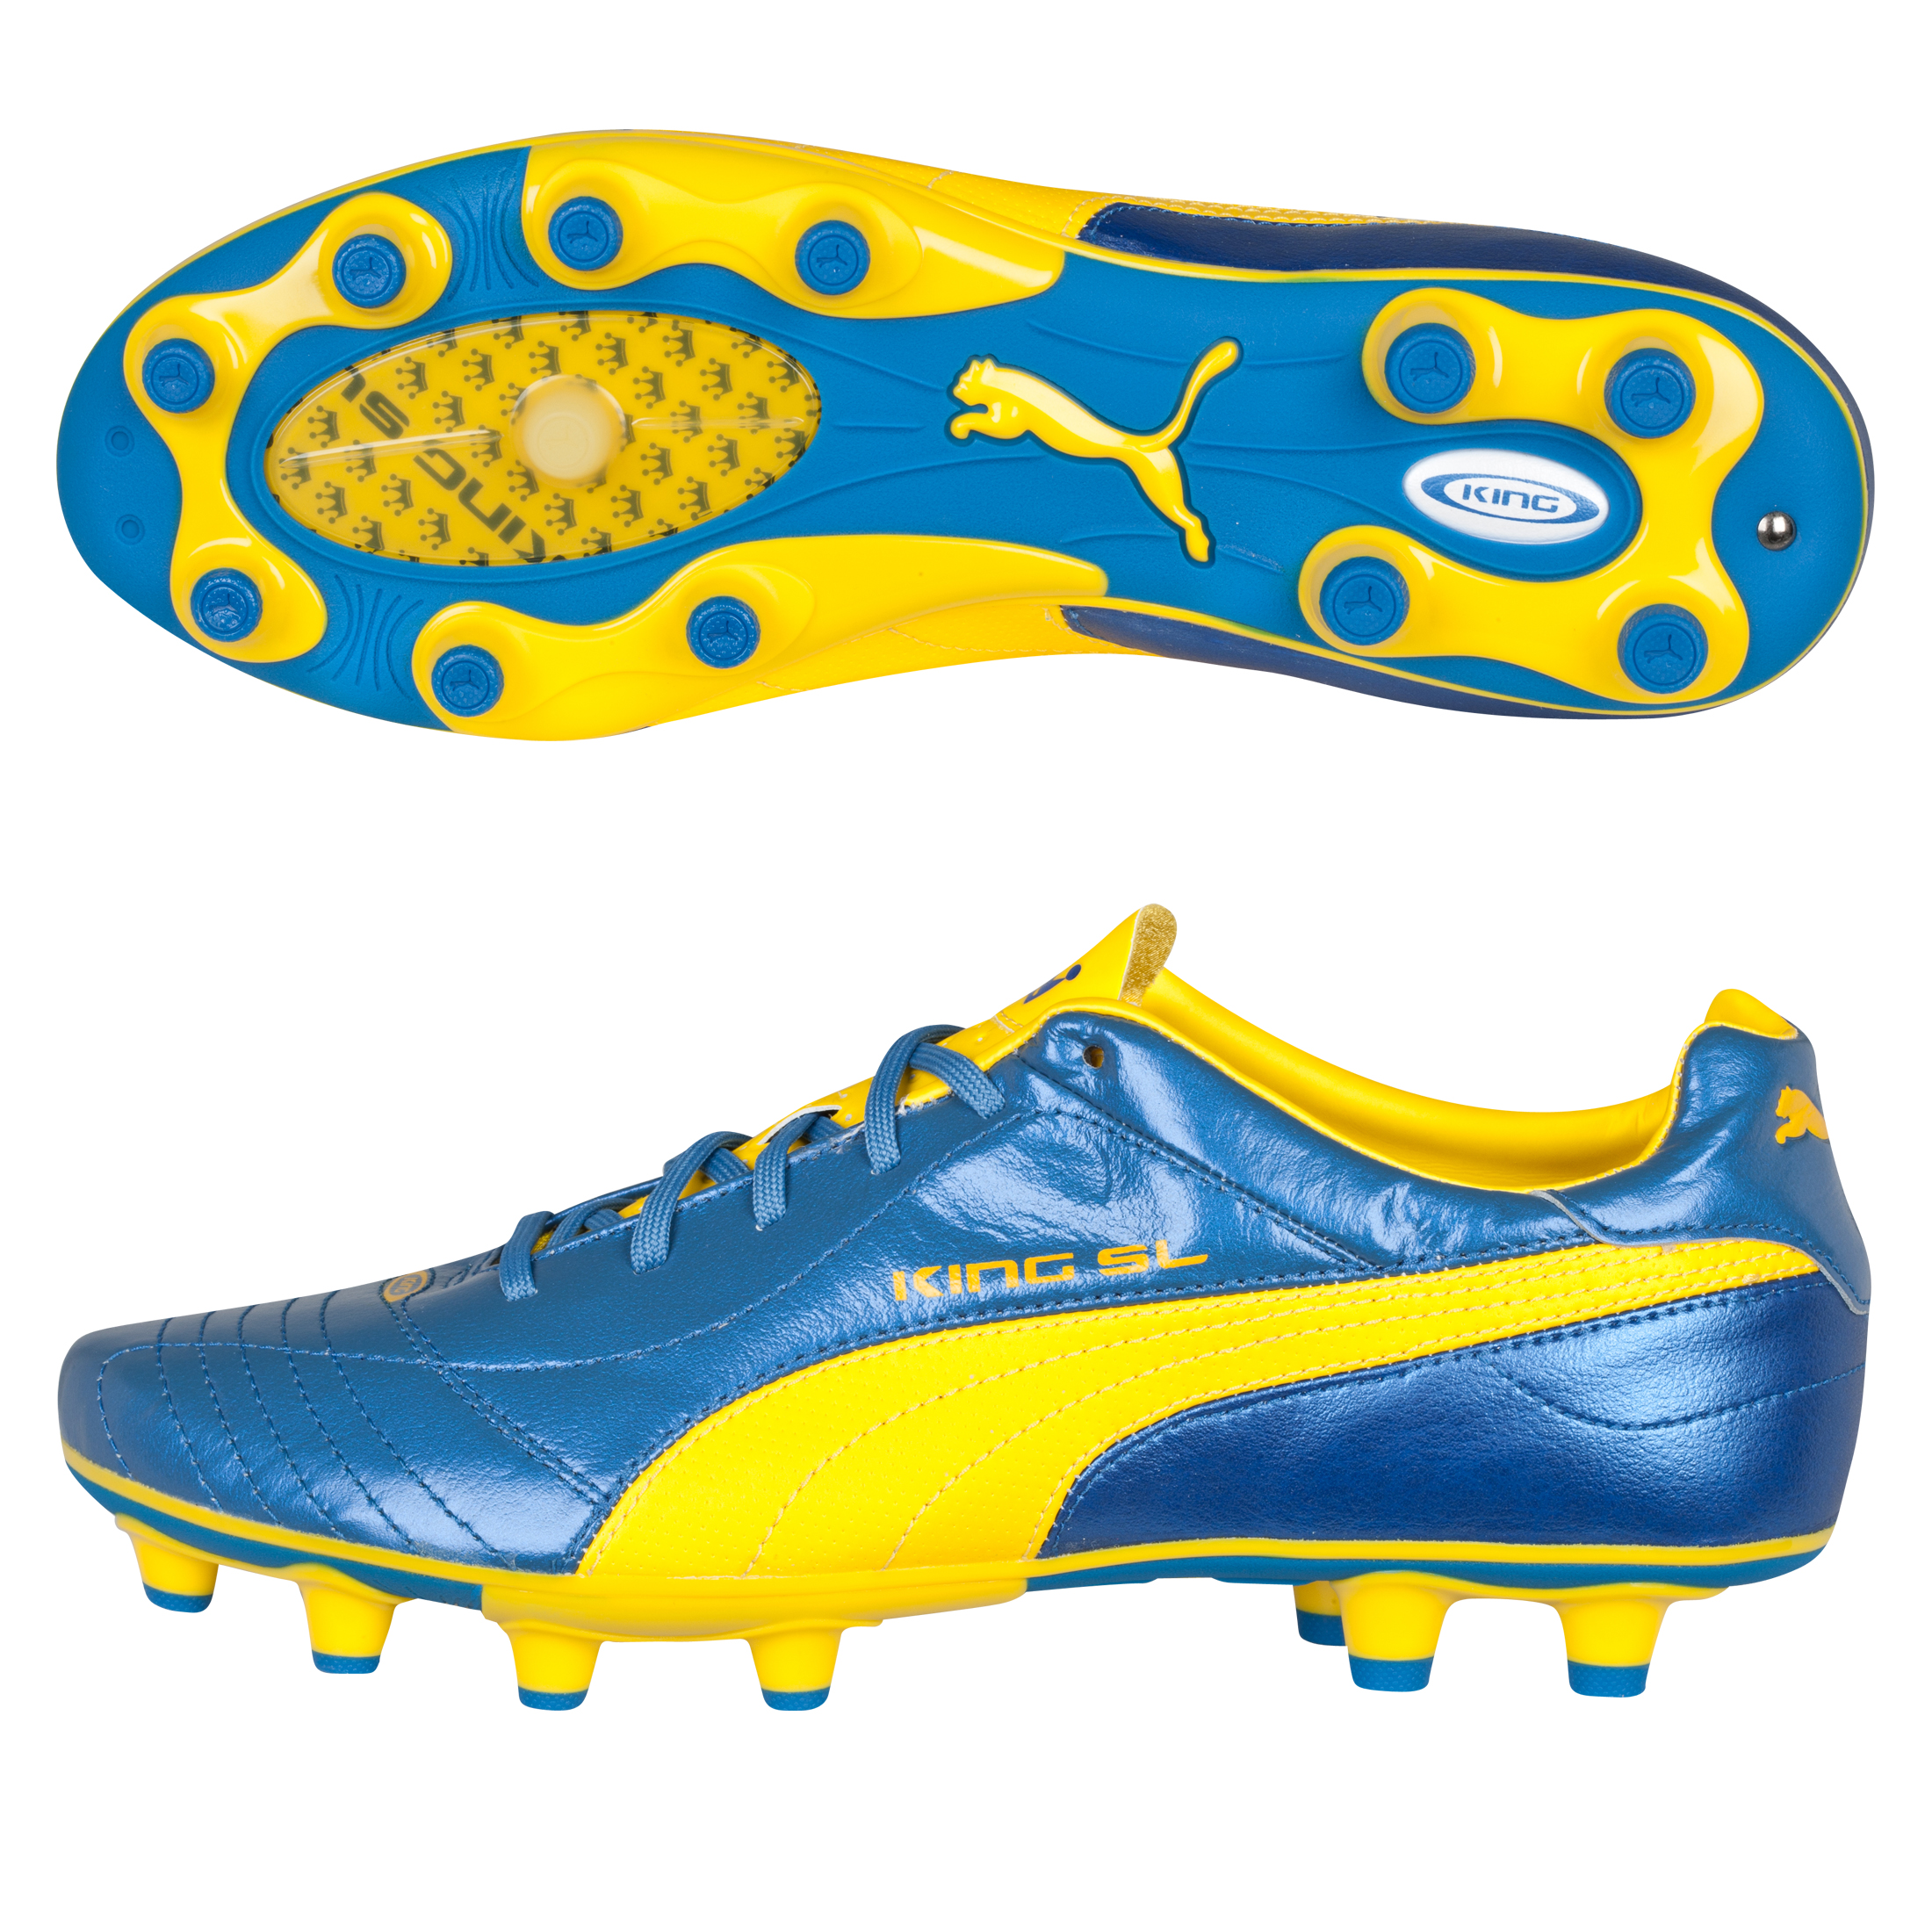 Puma King Finale SL i Firm Ground Football Boots - Blue Metallic/Dandelion/White